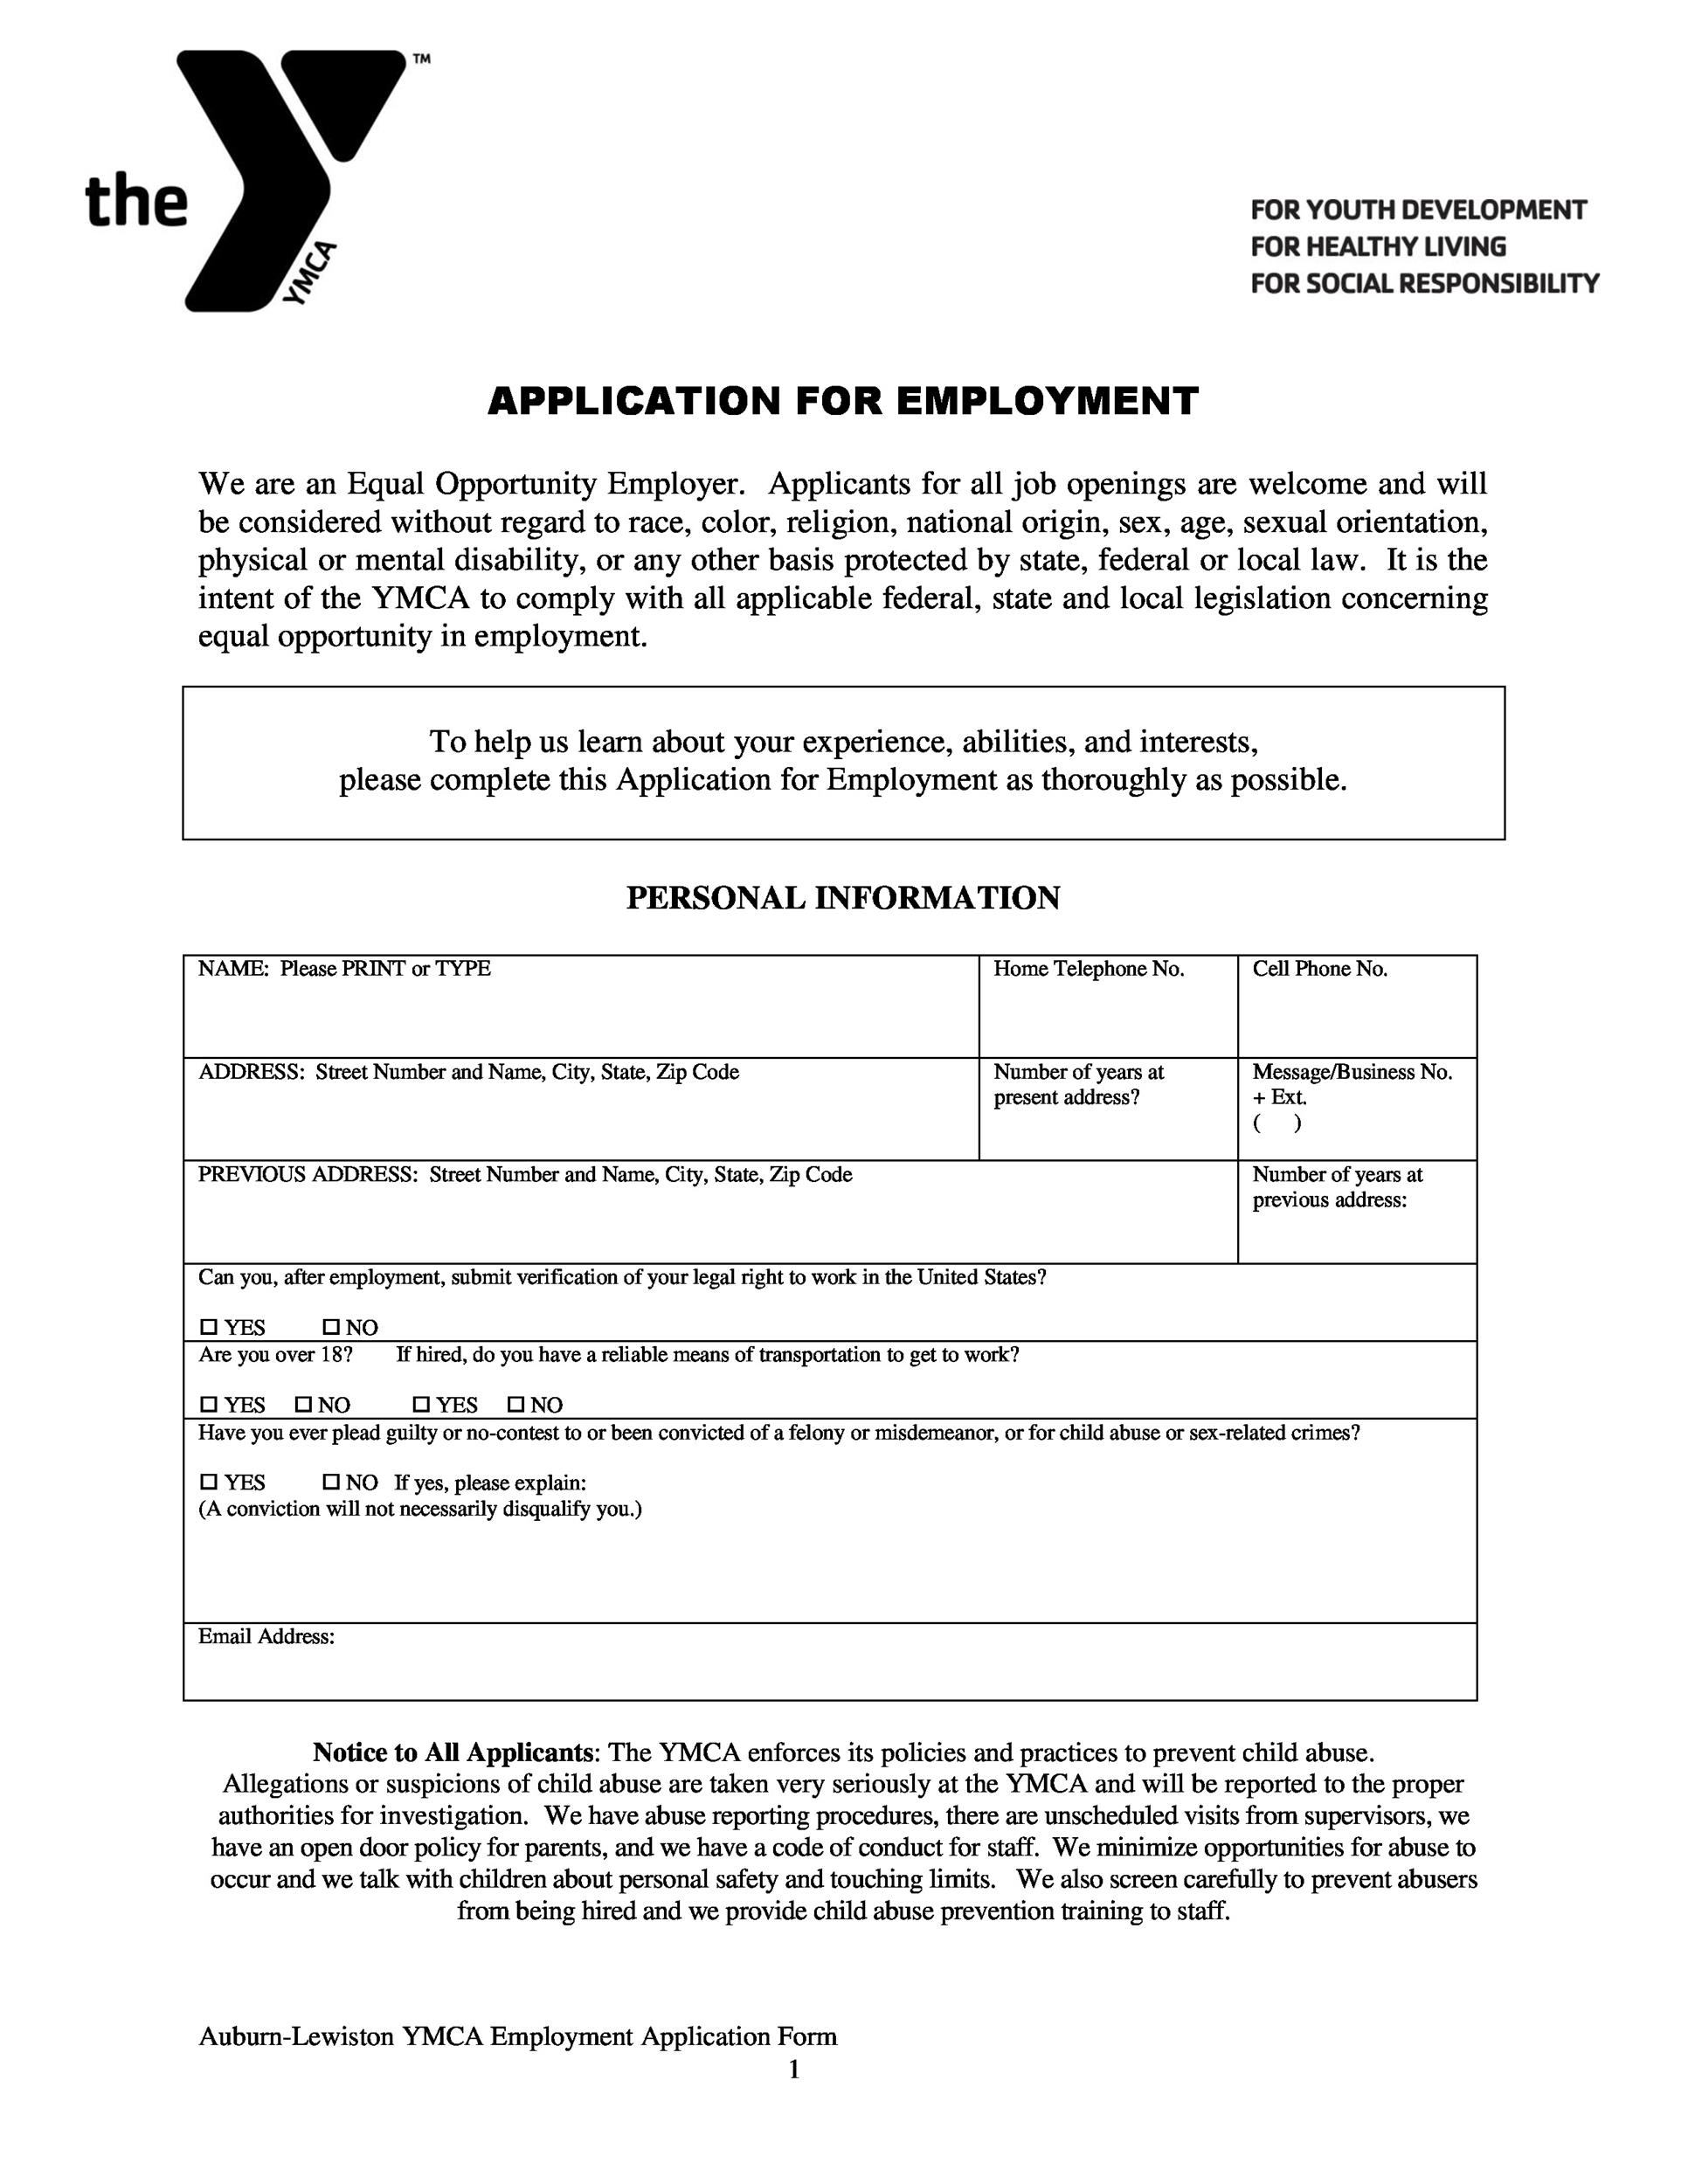 50 Free Employment Job Application Form Templates Printable